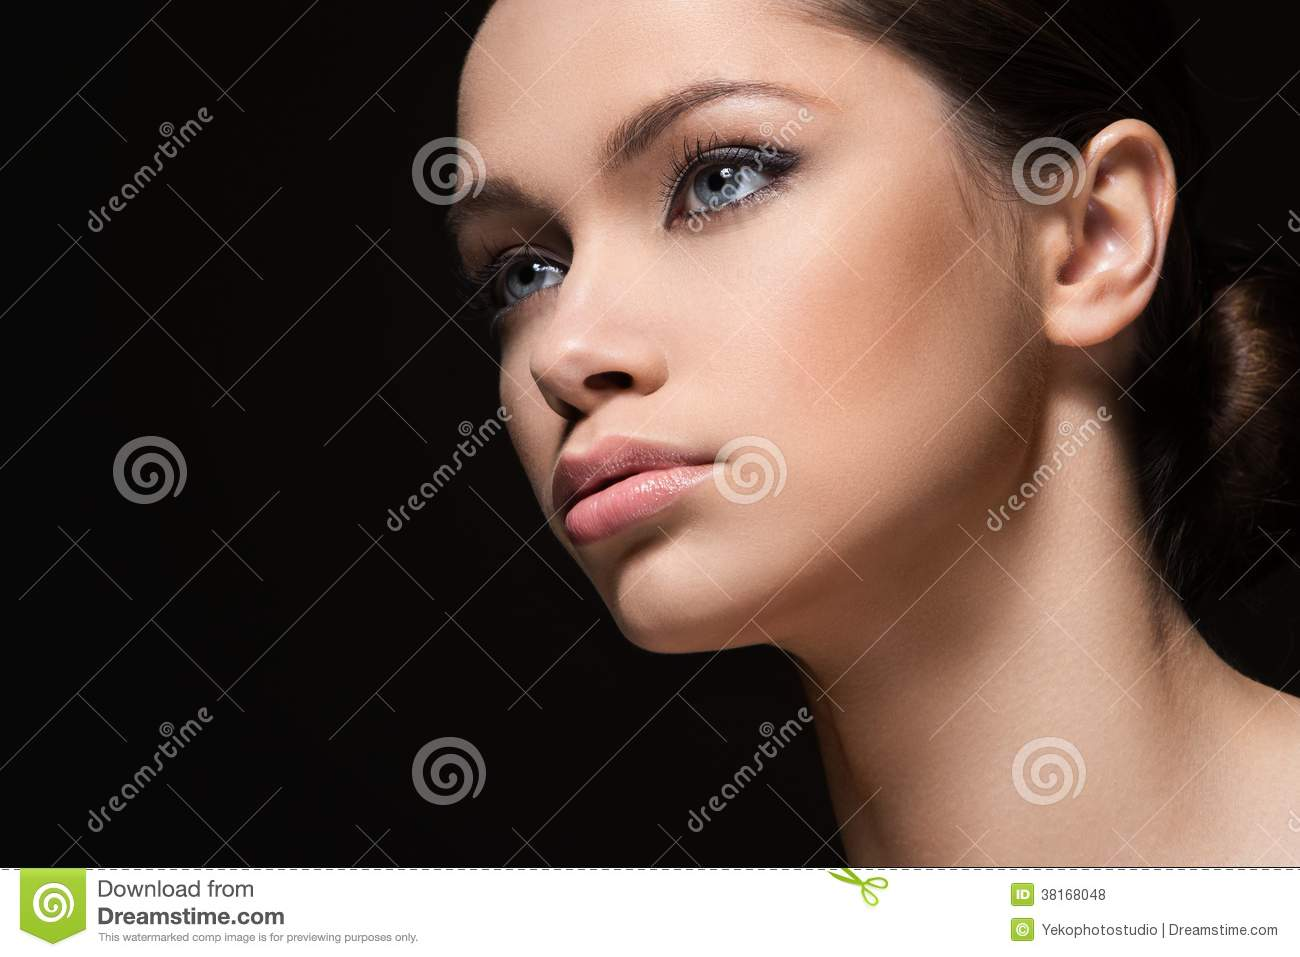 Beautiful girl with perfect face royalty free stock photos image 38168048 - Garls perpact ...